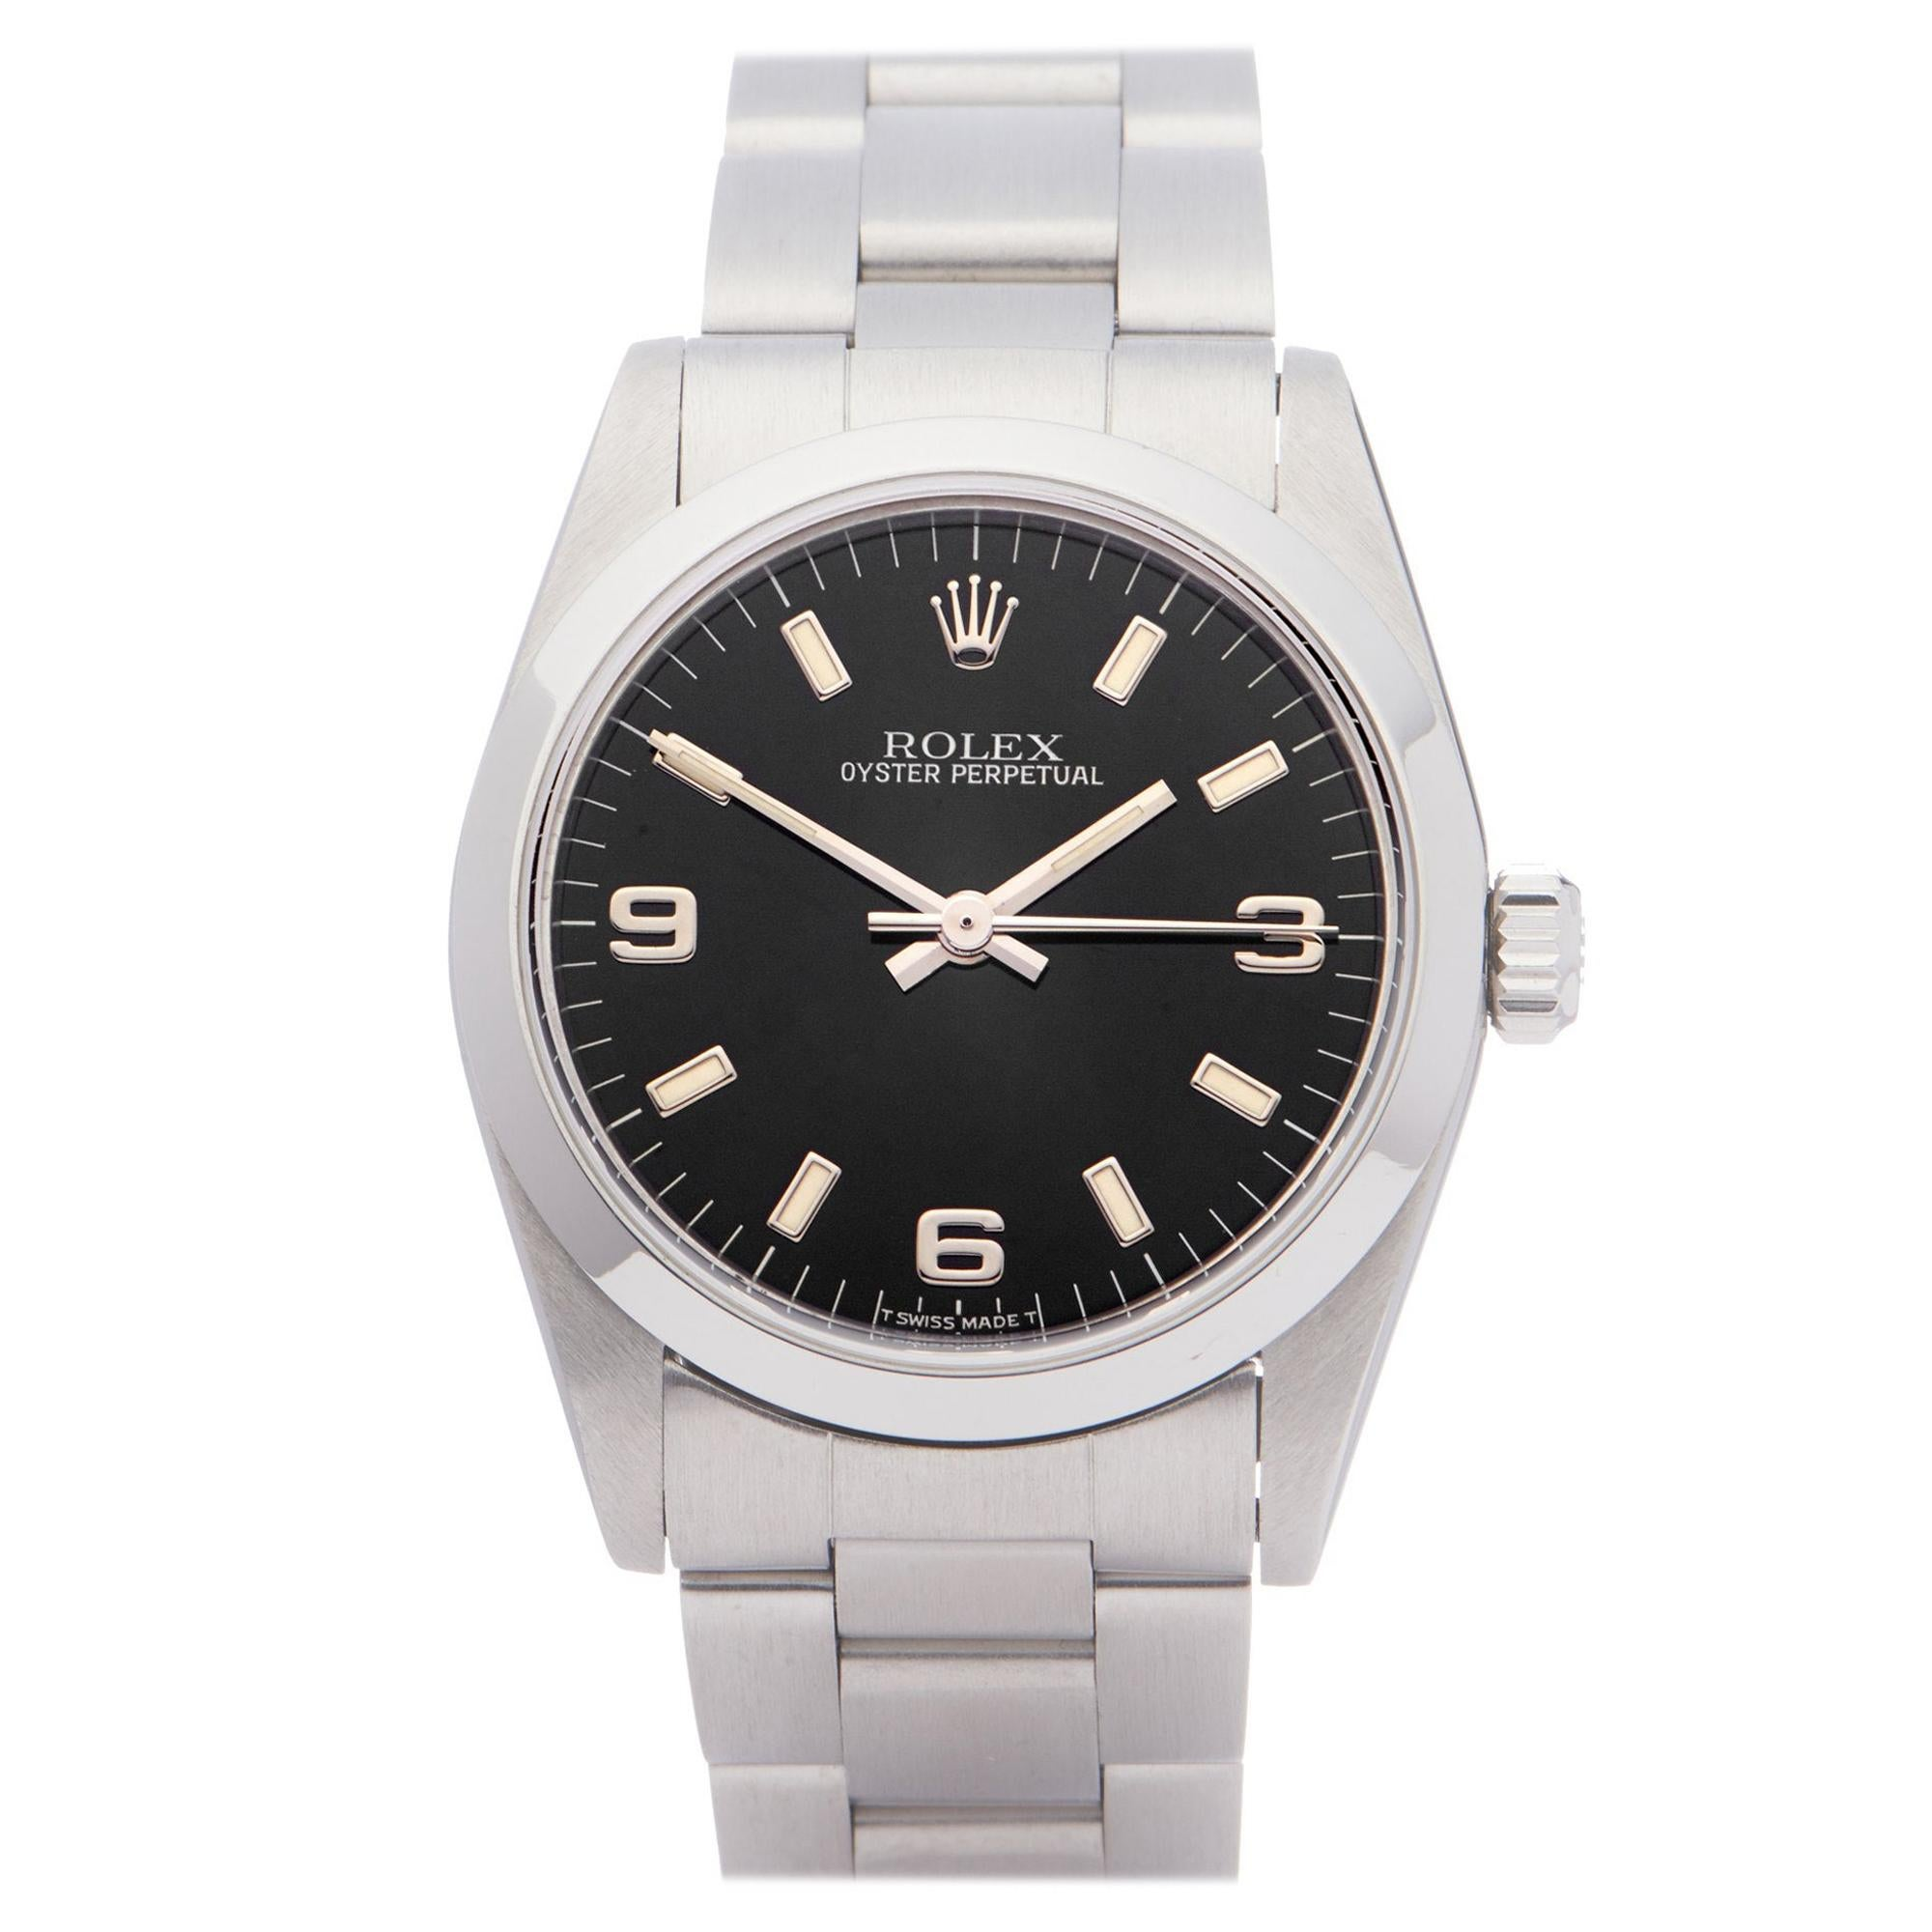 Rolex Oyster Perpetual 31 67480 Ladies Stainless Steel 0 Watch